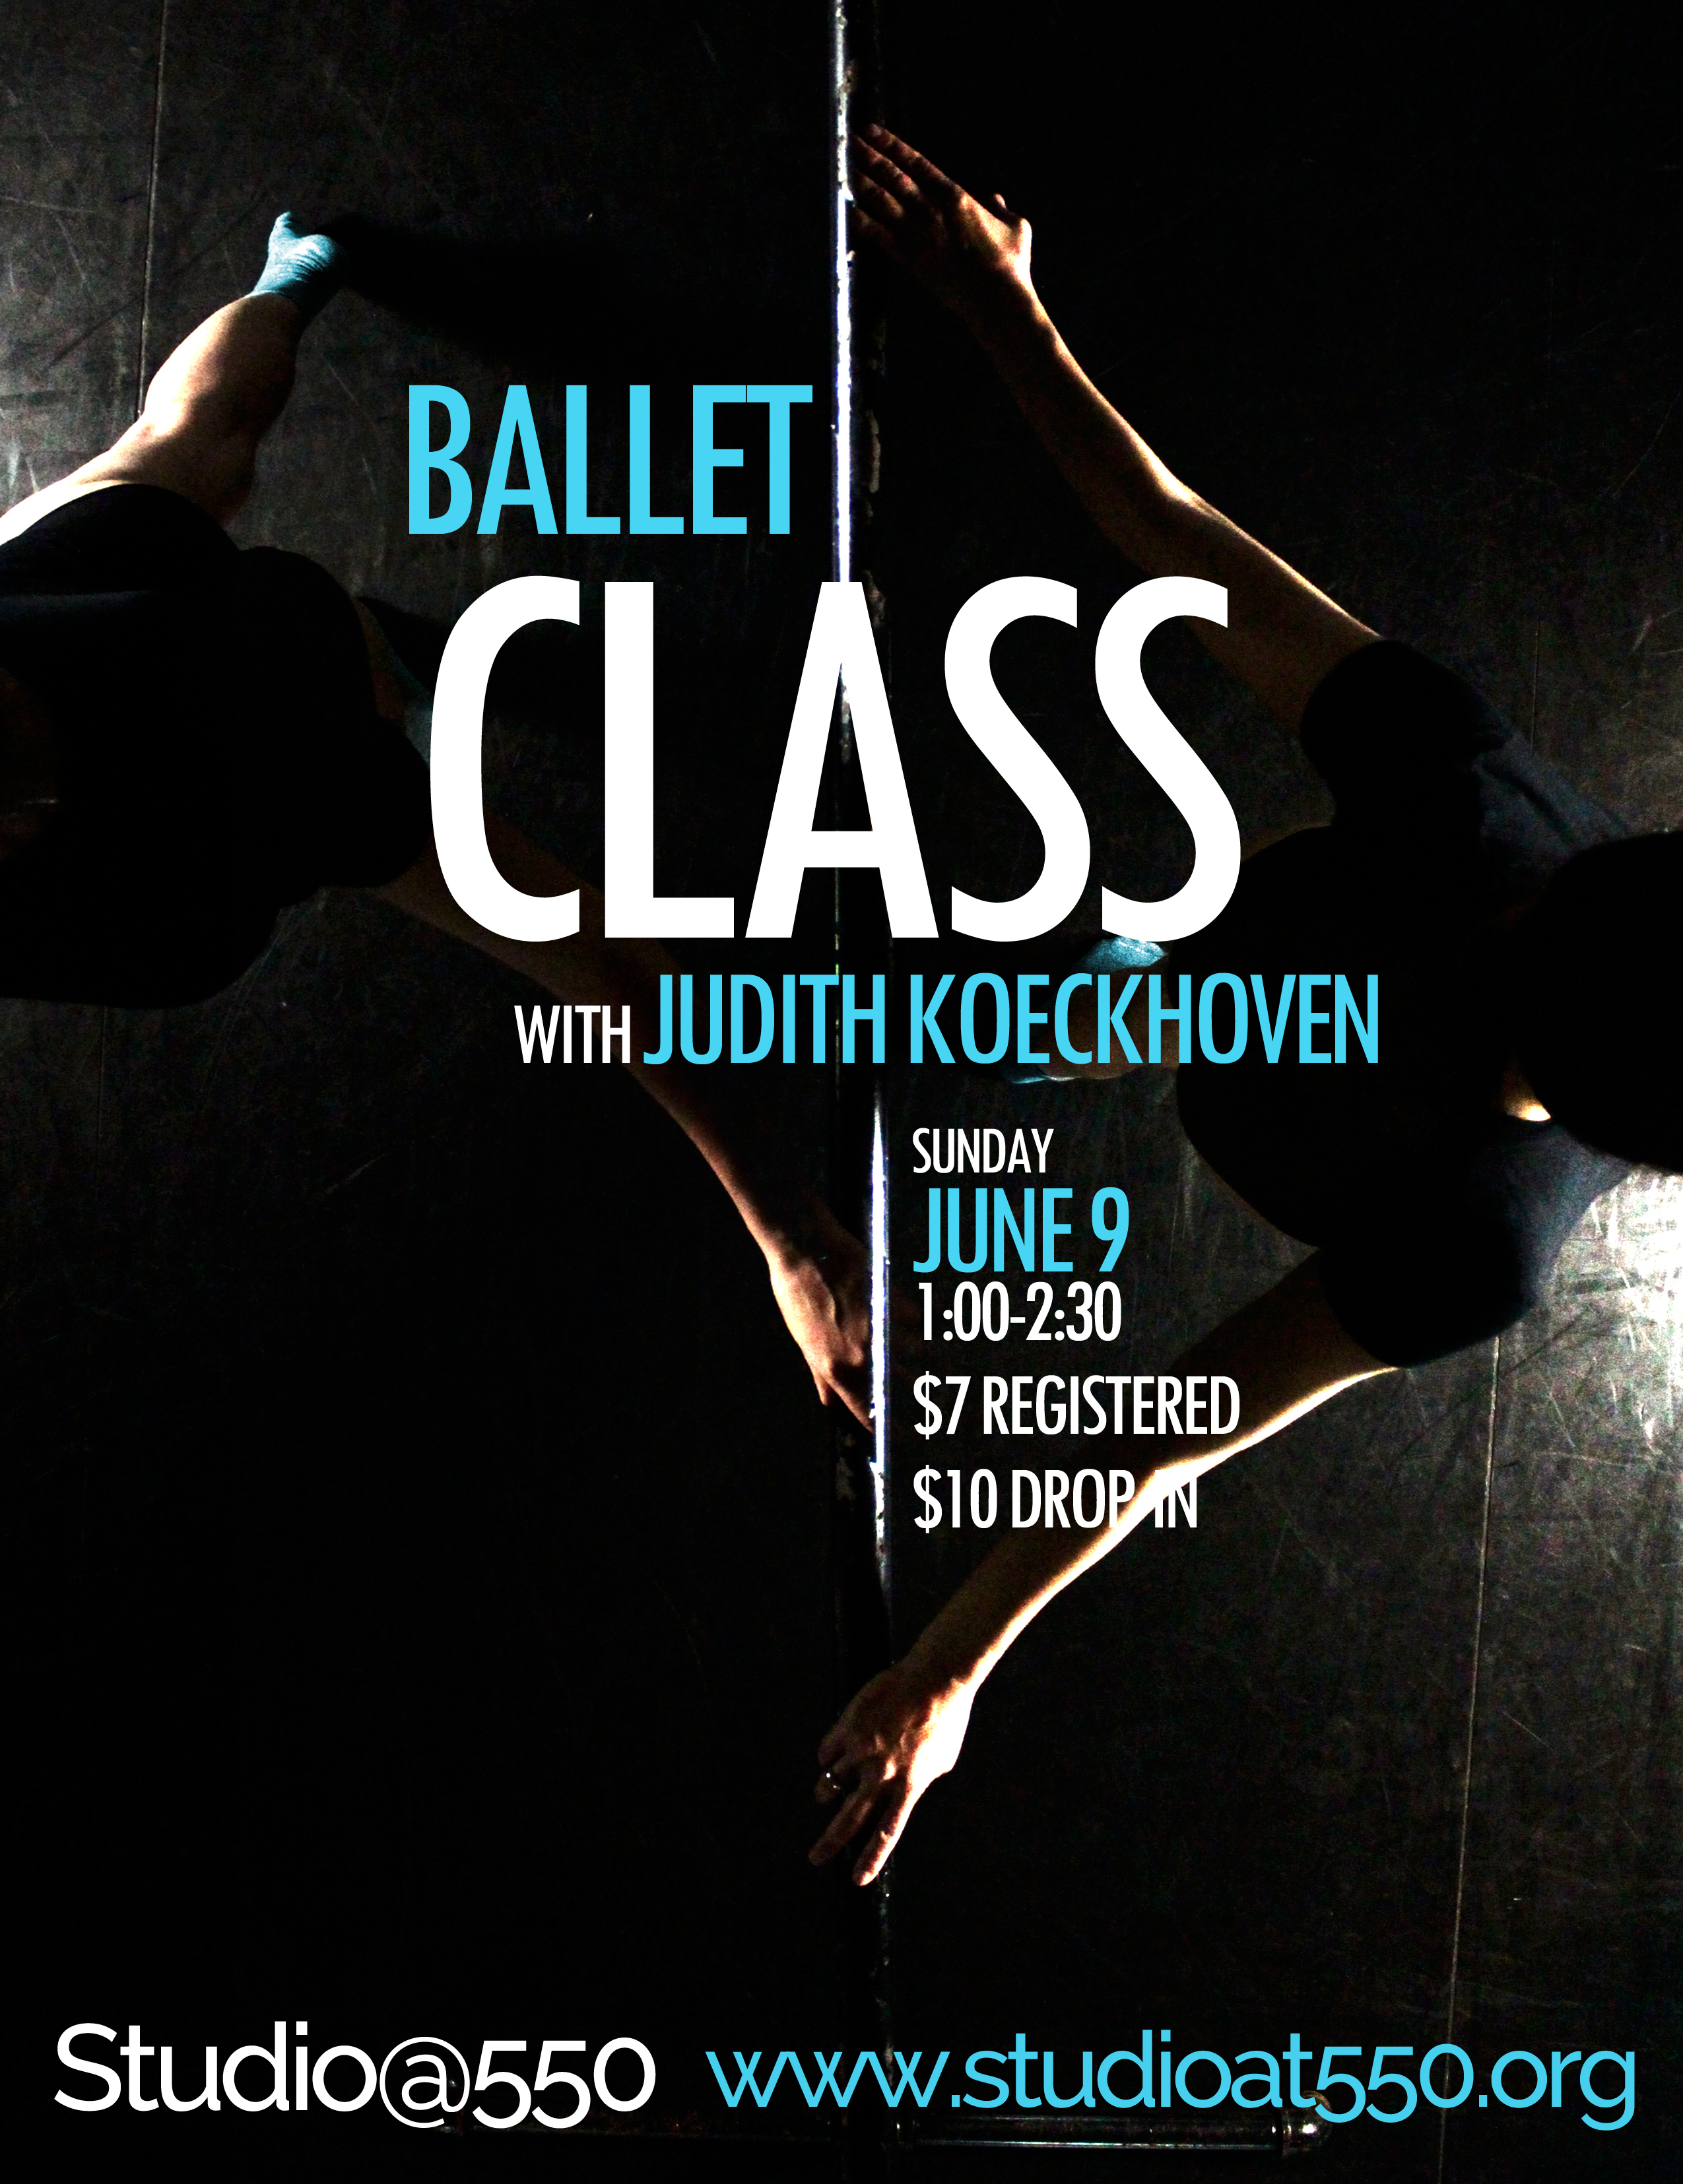 Ballet Class with Judith Koeckhoven (a workshop series)